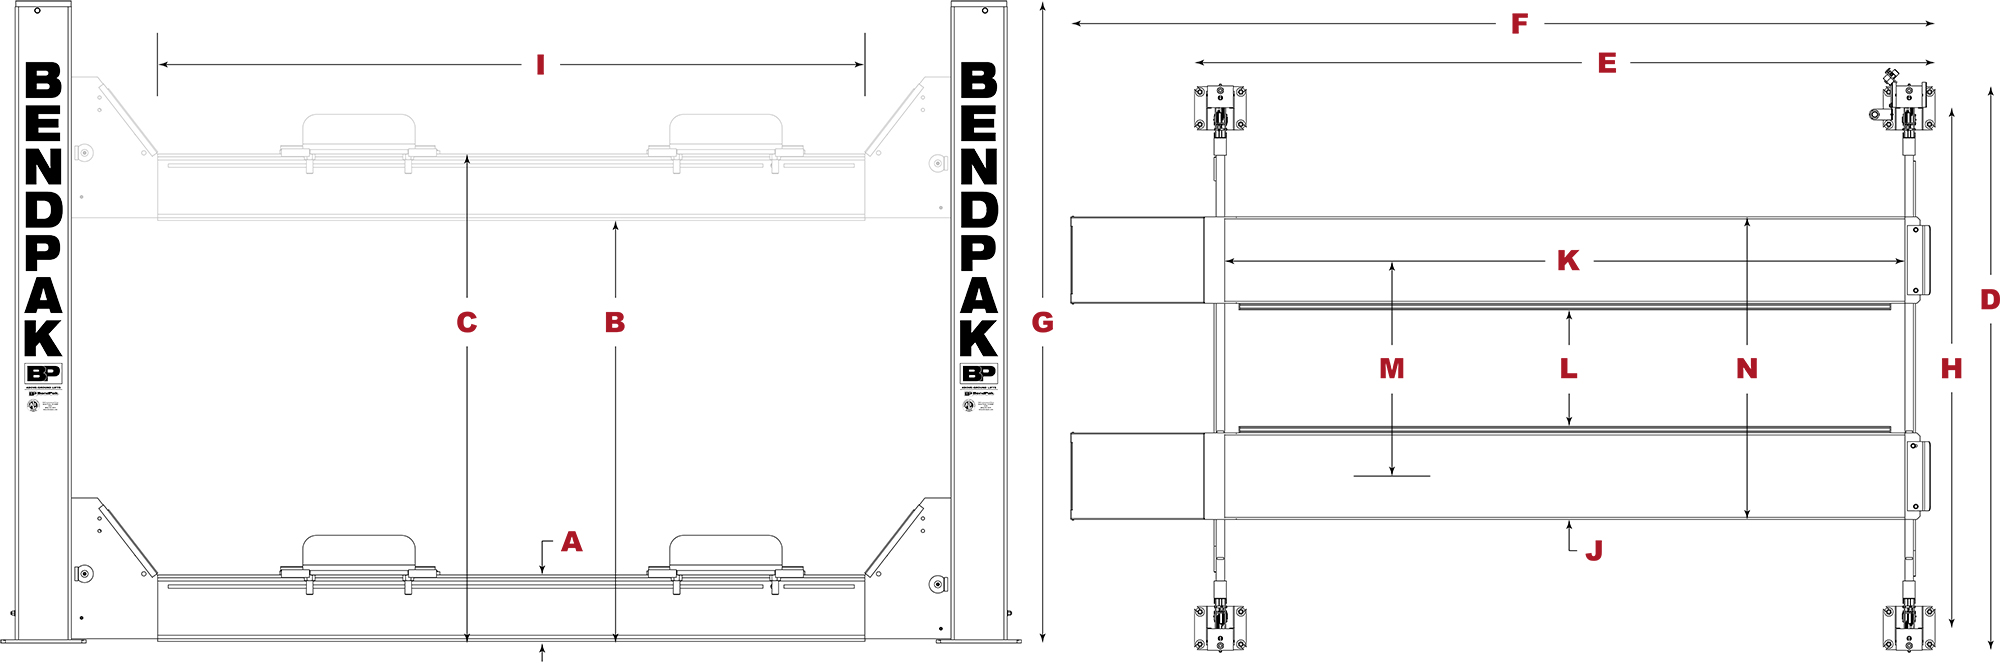 bendpak-heavy-duty-four-post-lift-specifications-diagram.jpg